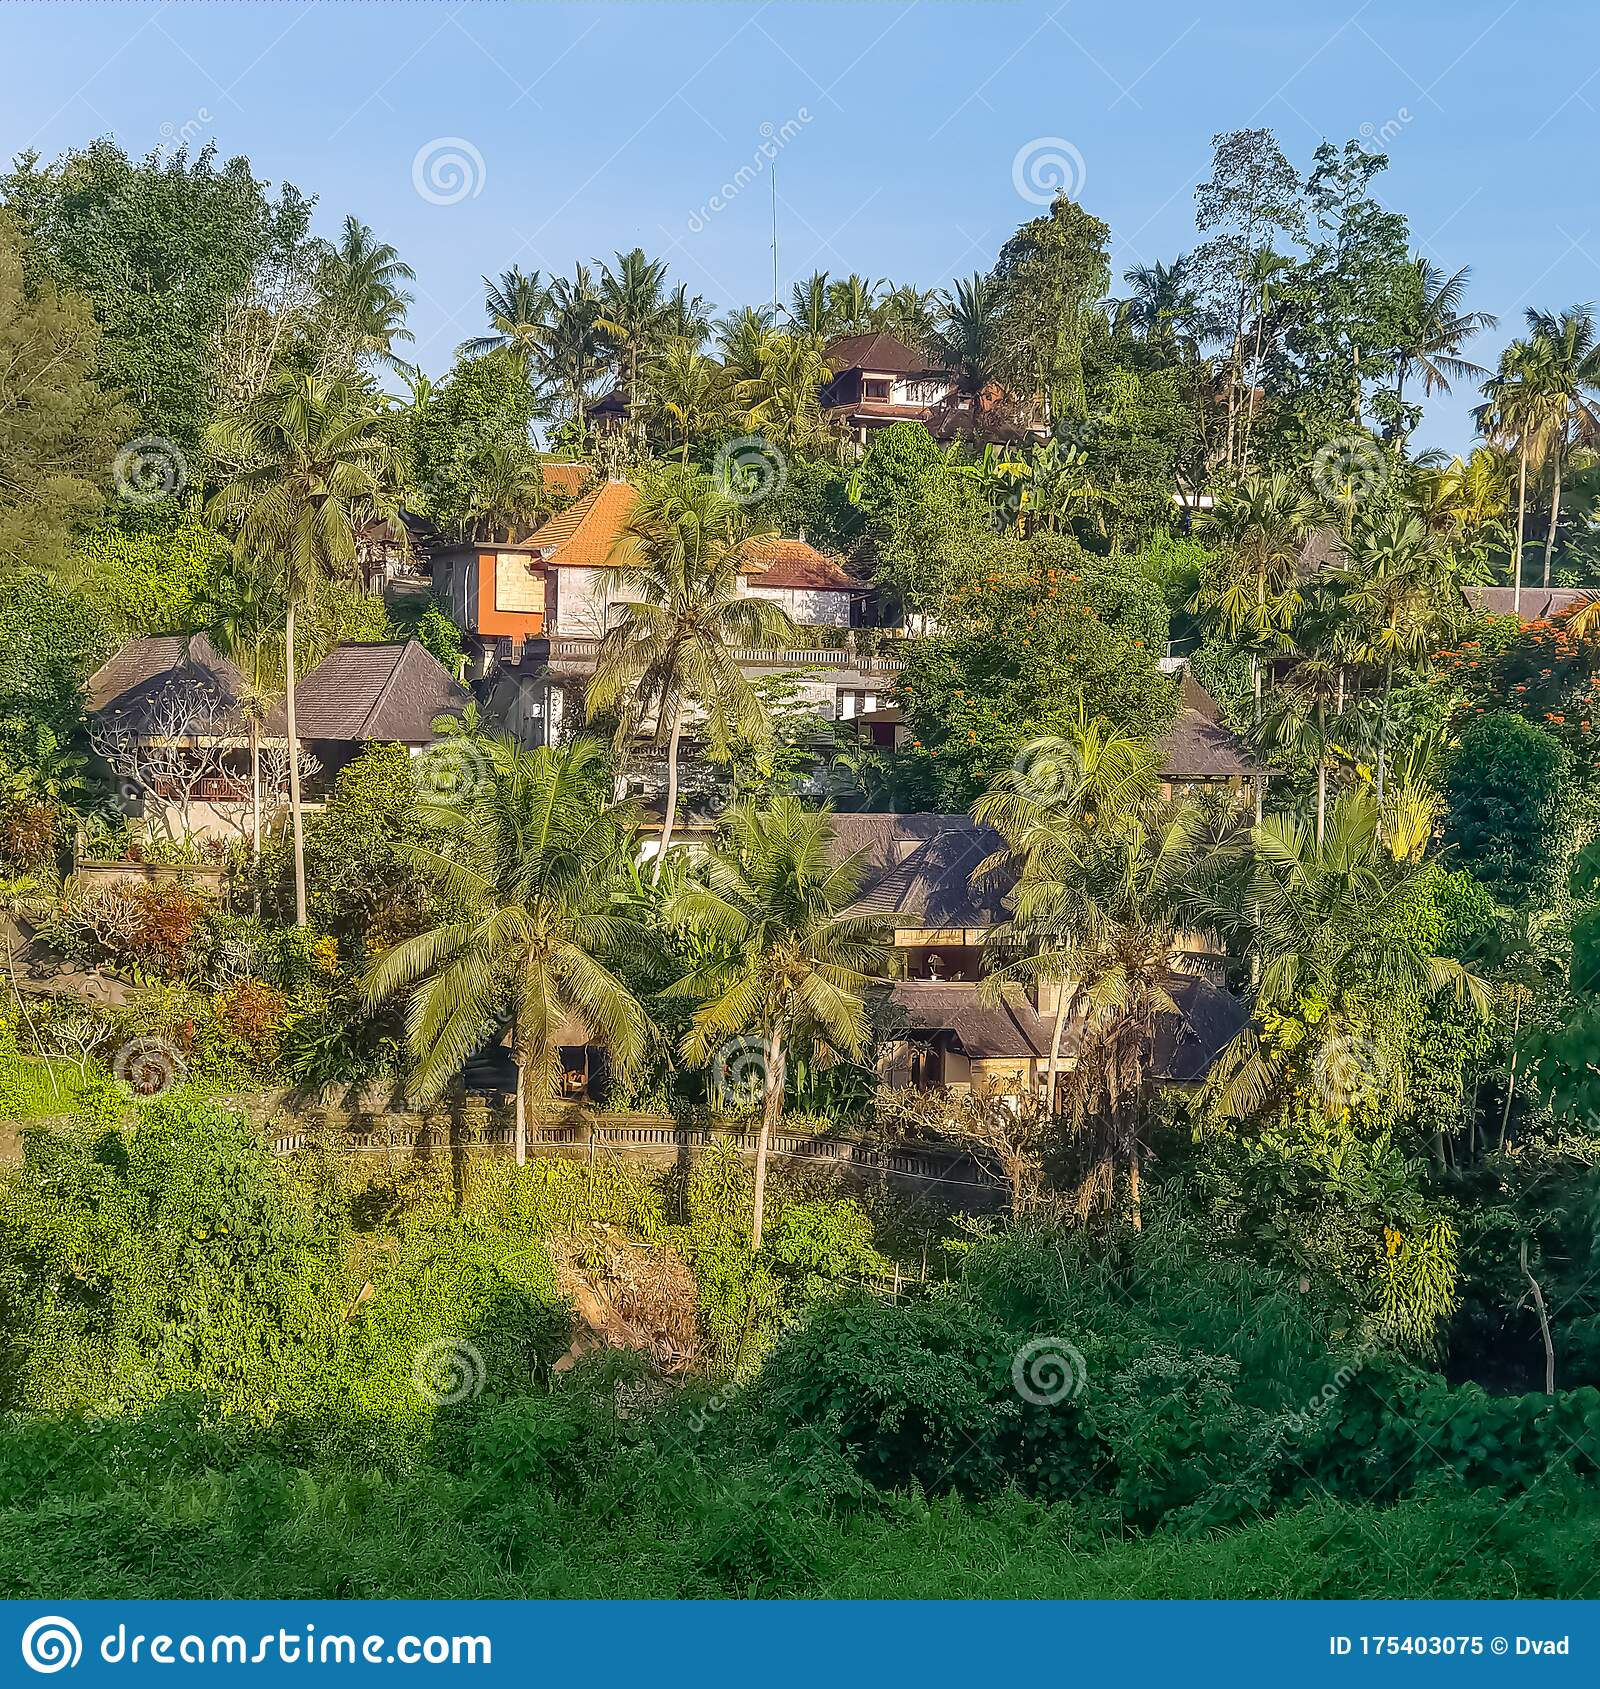 Sunset View On Jungle And Villas At Ubud Bali Indonesia Stock Image Image Of Tourism Destination 175403075